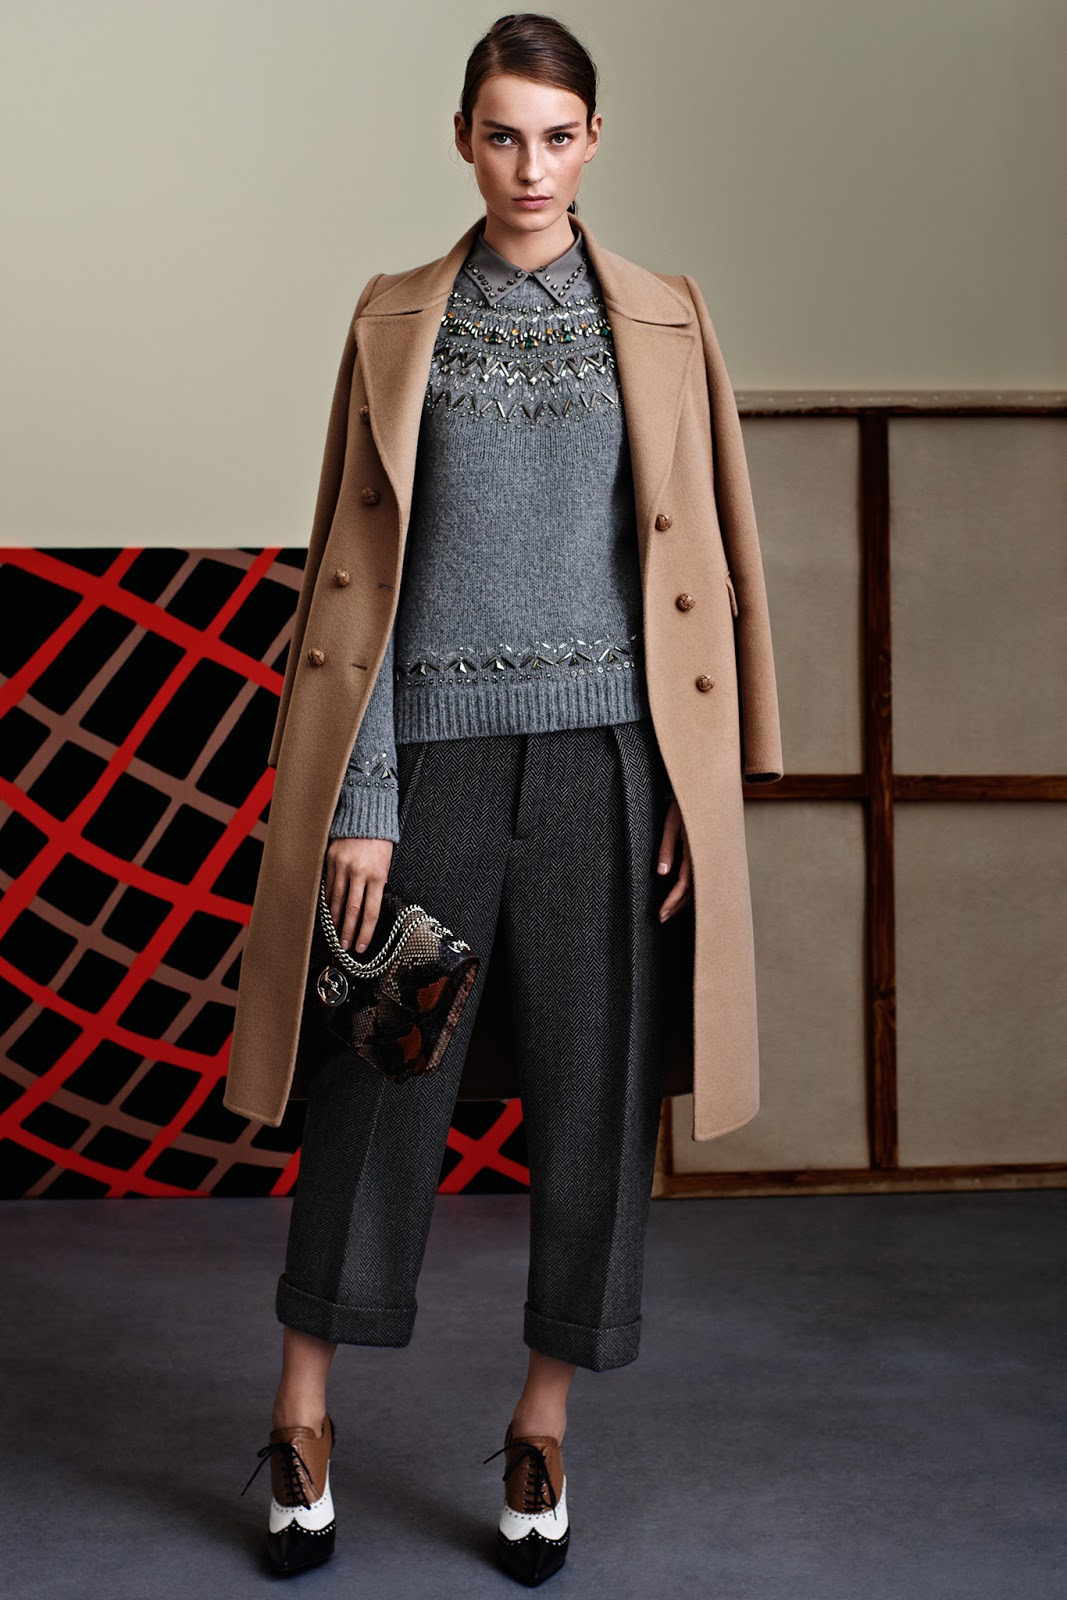 transitional style inspiration from the catwalk / how to wear cropped trousers in autumn / trends / inspiration / Gucci / via fashionedbylove.co.uk / british fashion & style blog